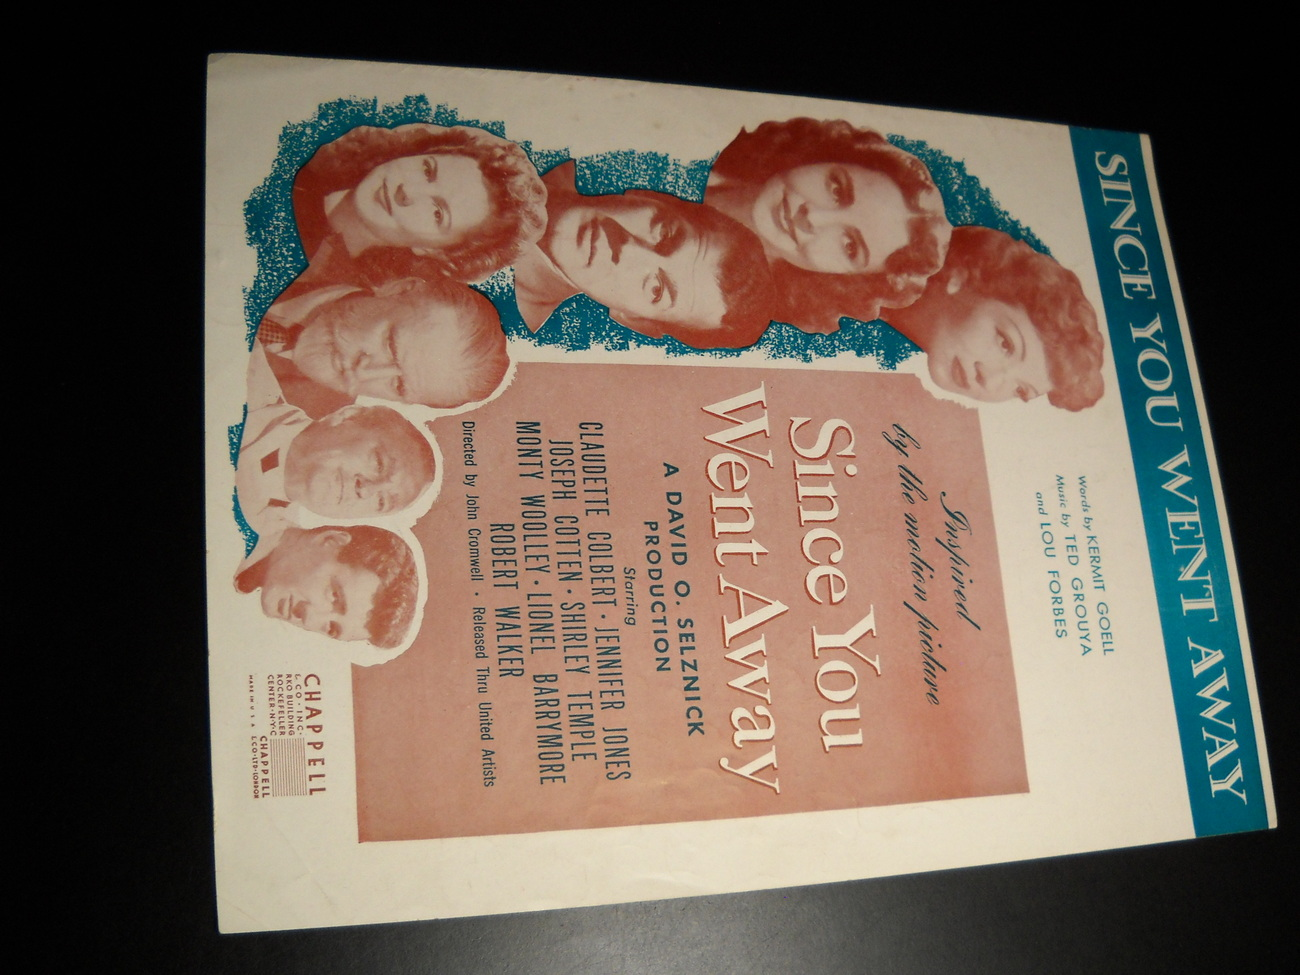 Sheet_music_since_you_went_away_selznick_motion_picture_1944_chappell__01